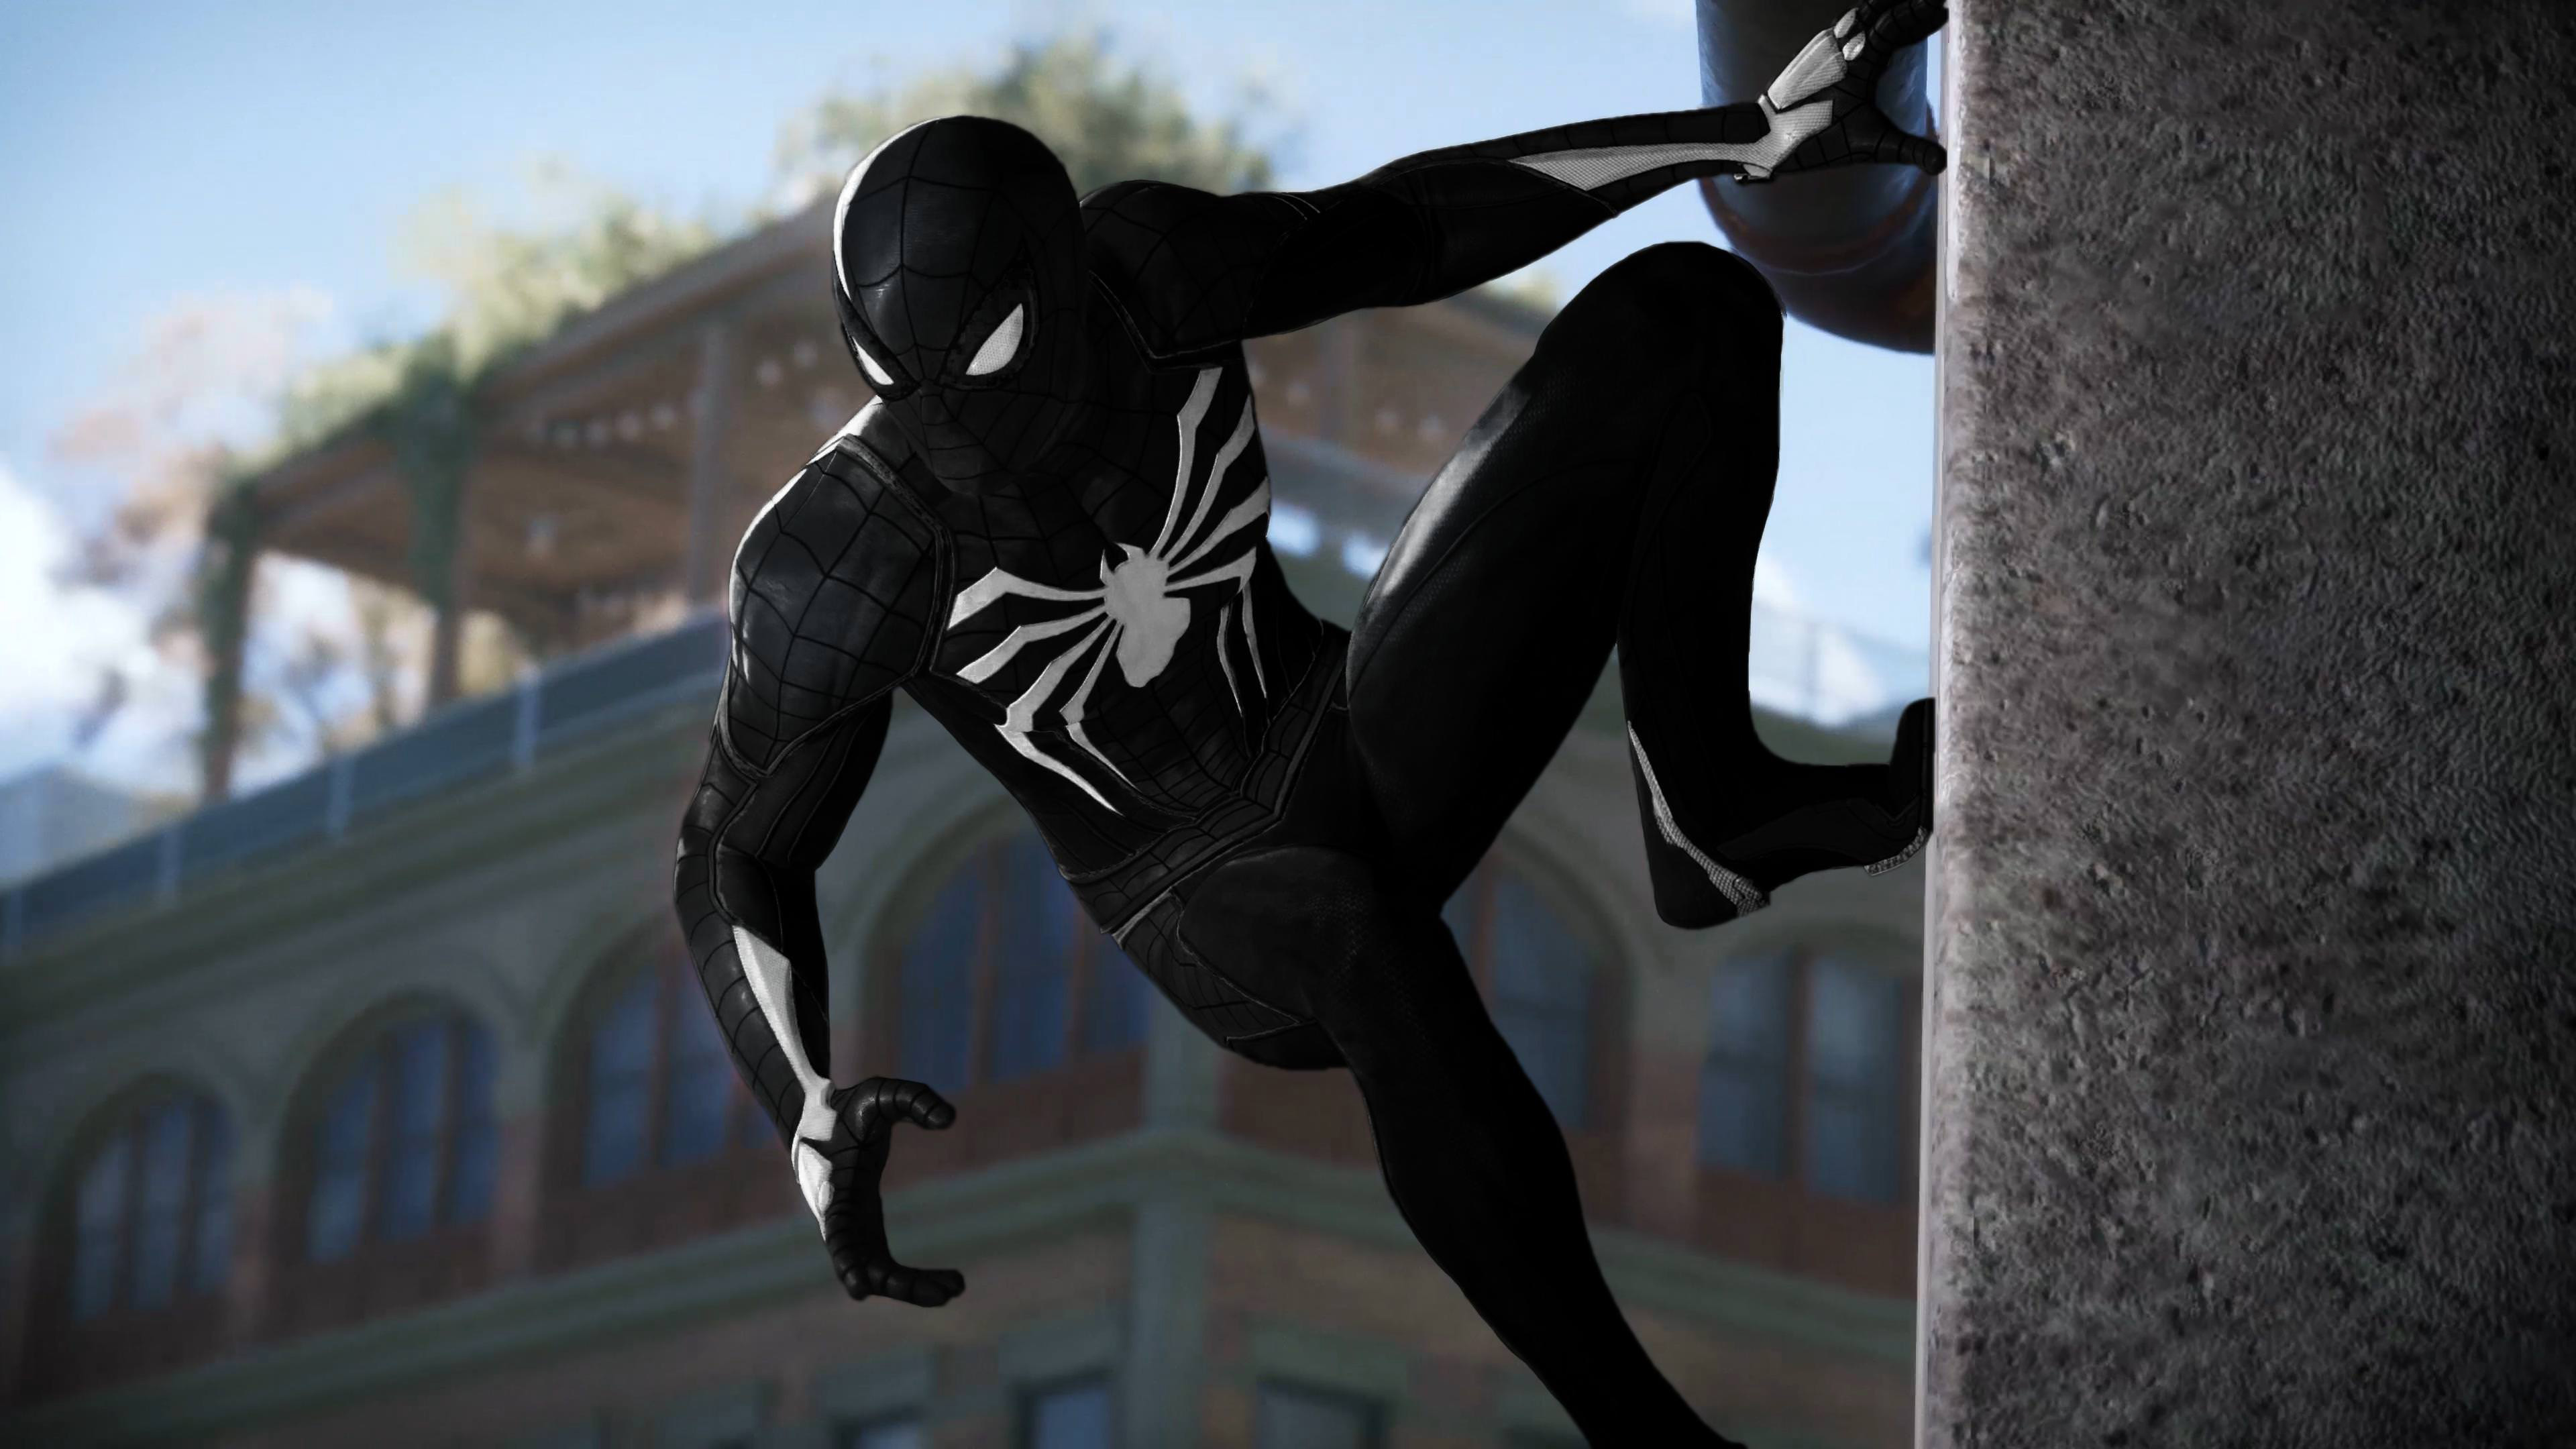 Aninimal Book: Black Spiderman 4k, HD Superheroes, 4k Wallpapers, Images, Backgrounds, Photos and ...